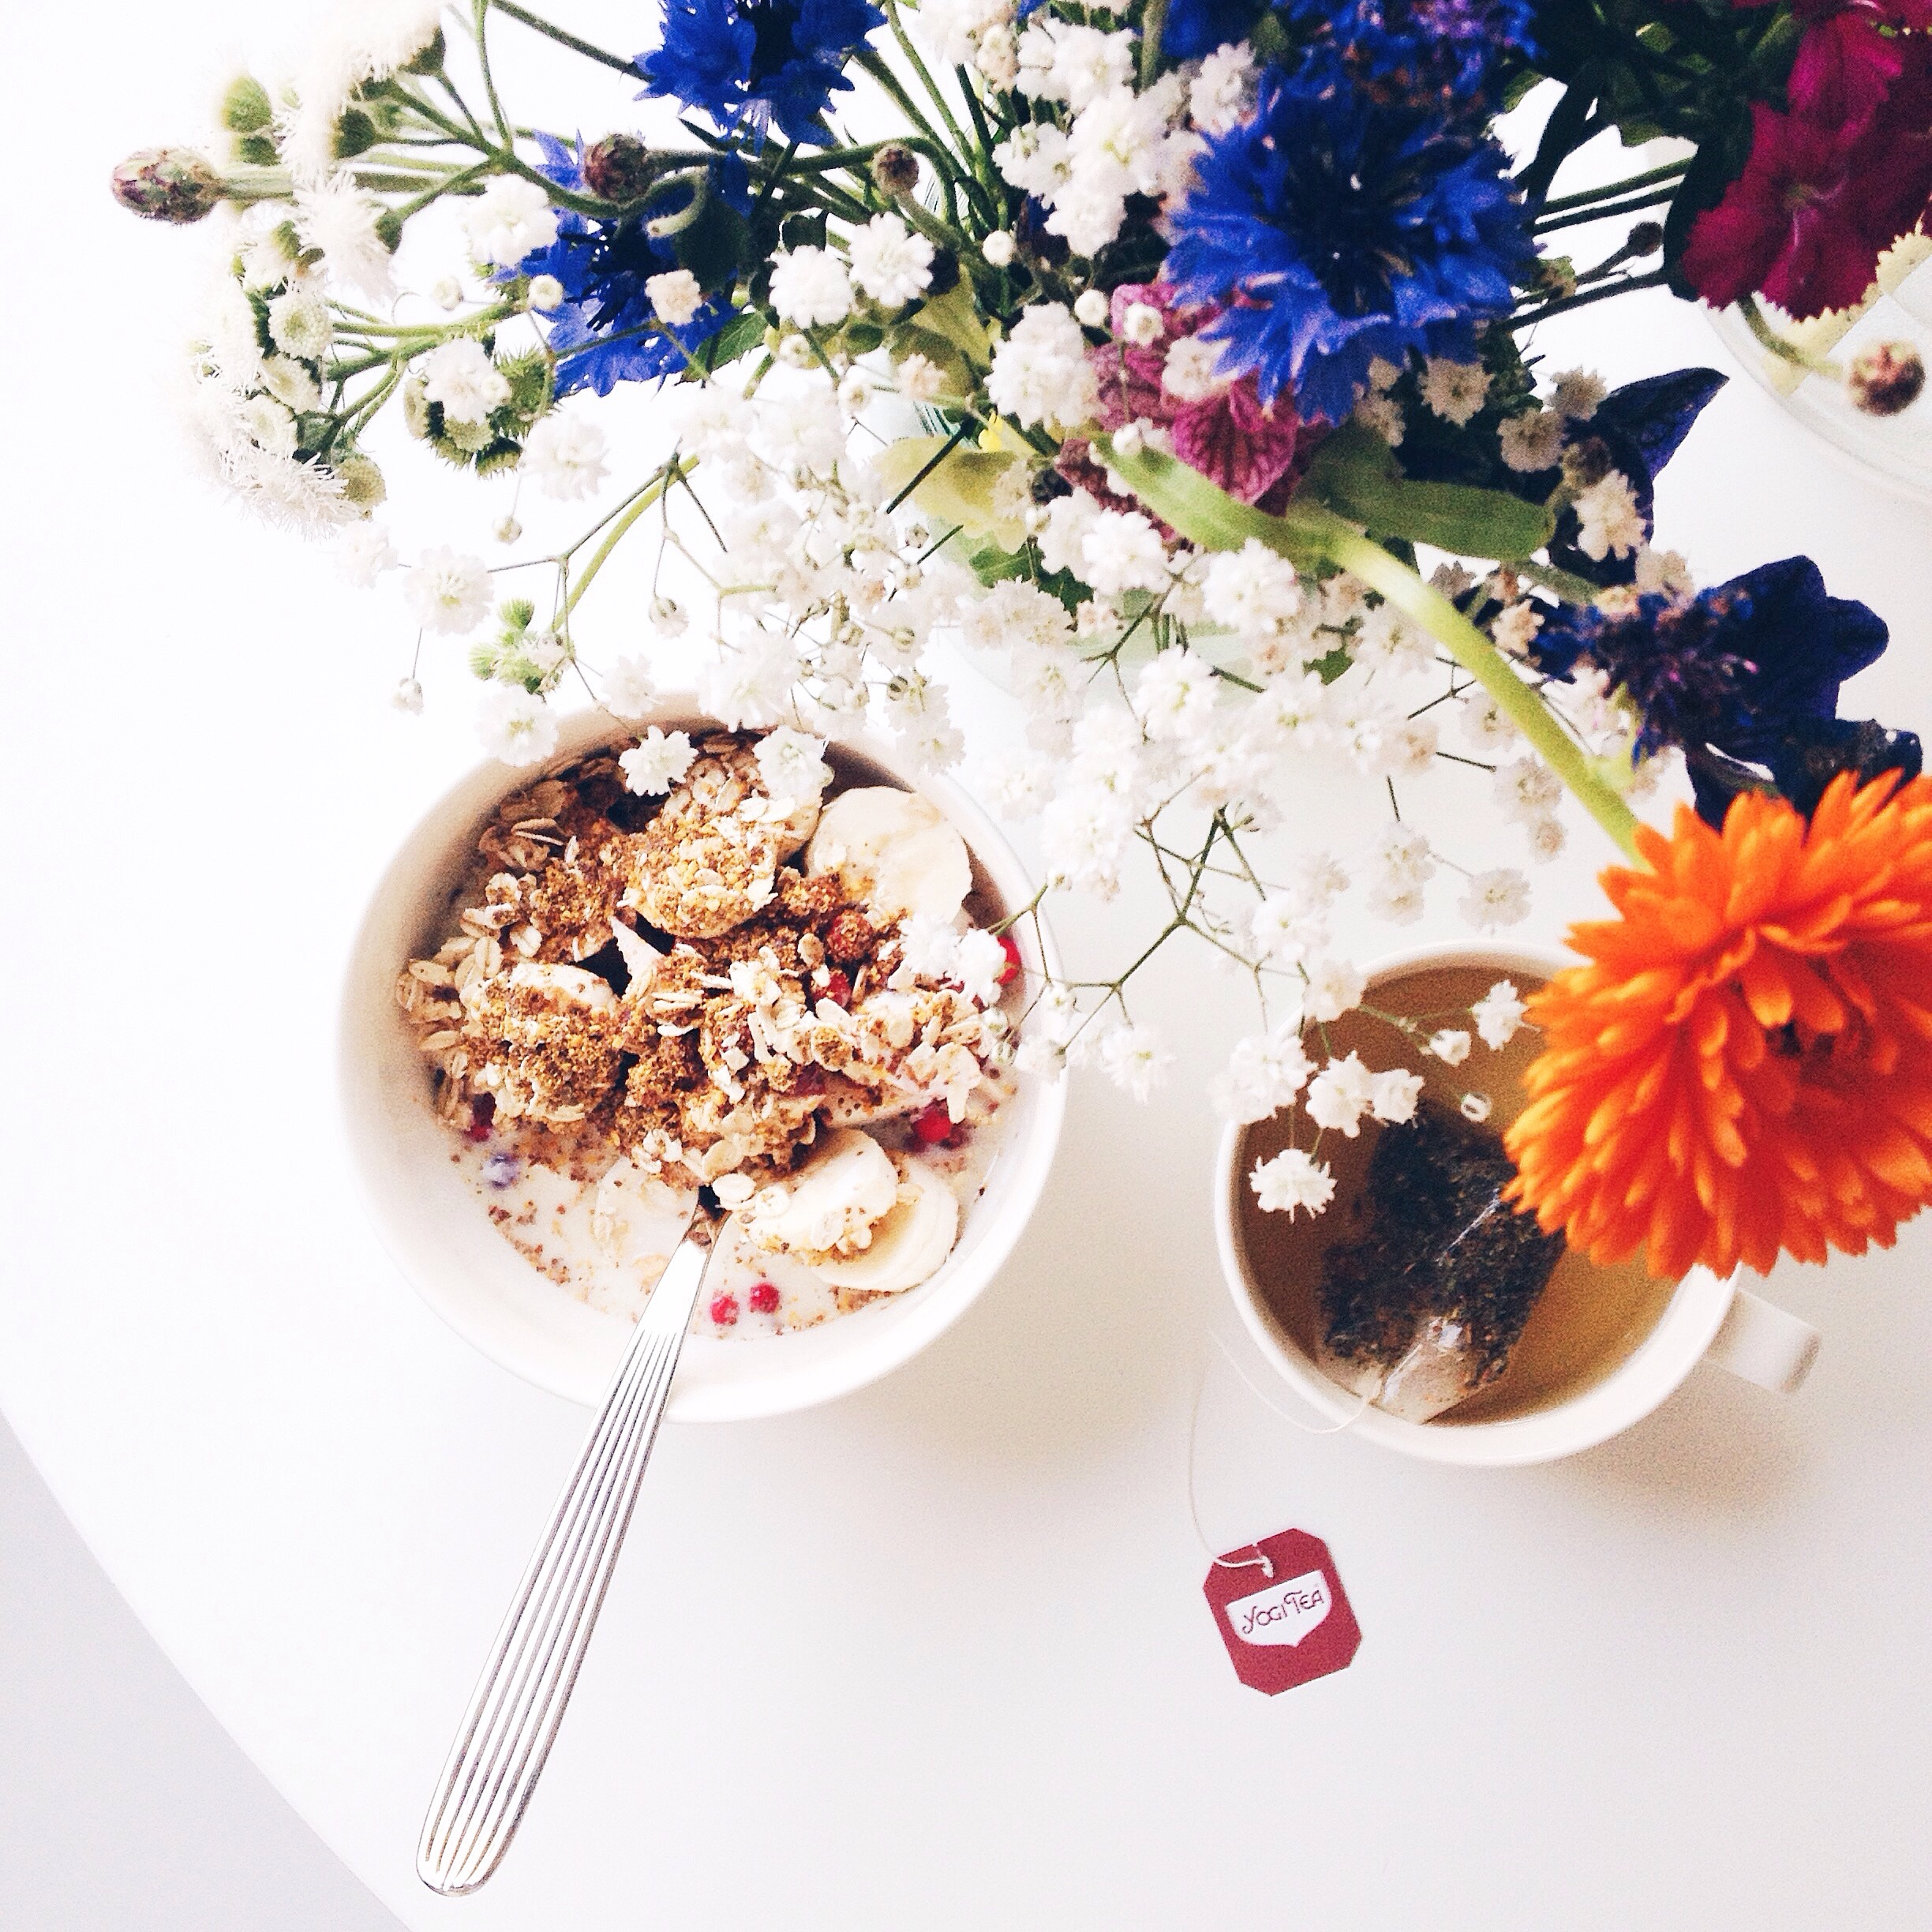 Vegan Breakfast and flowers